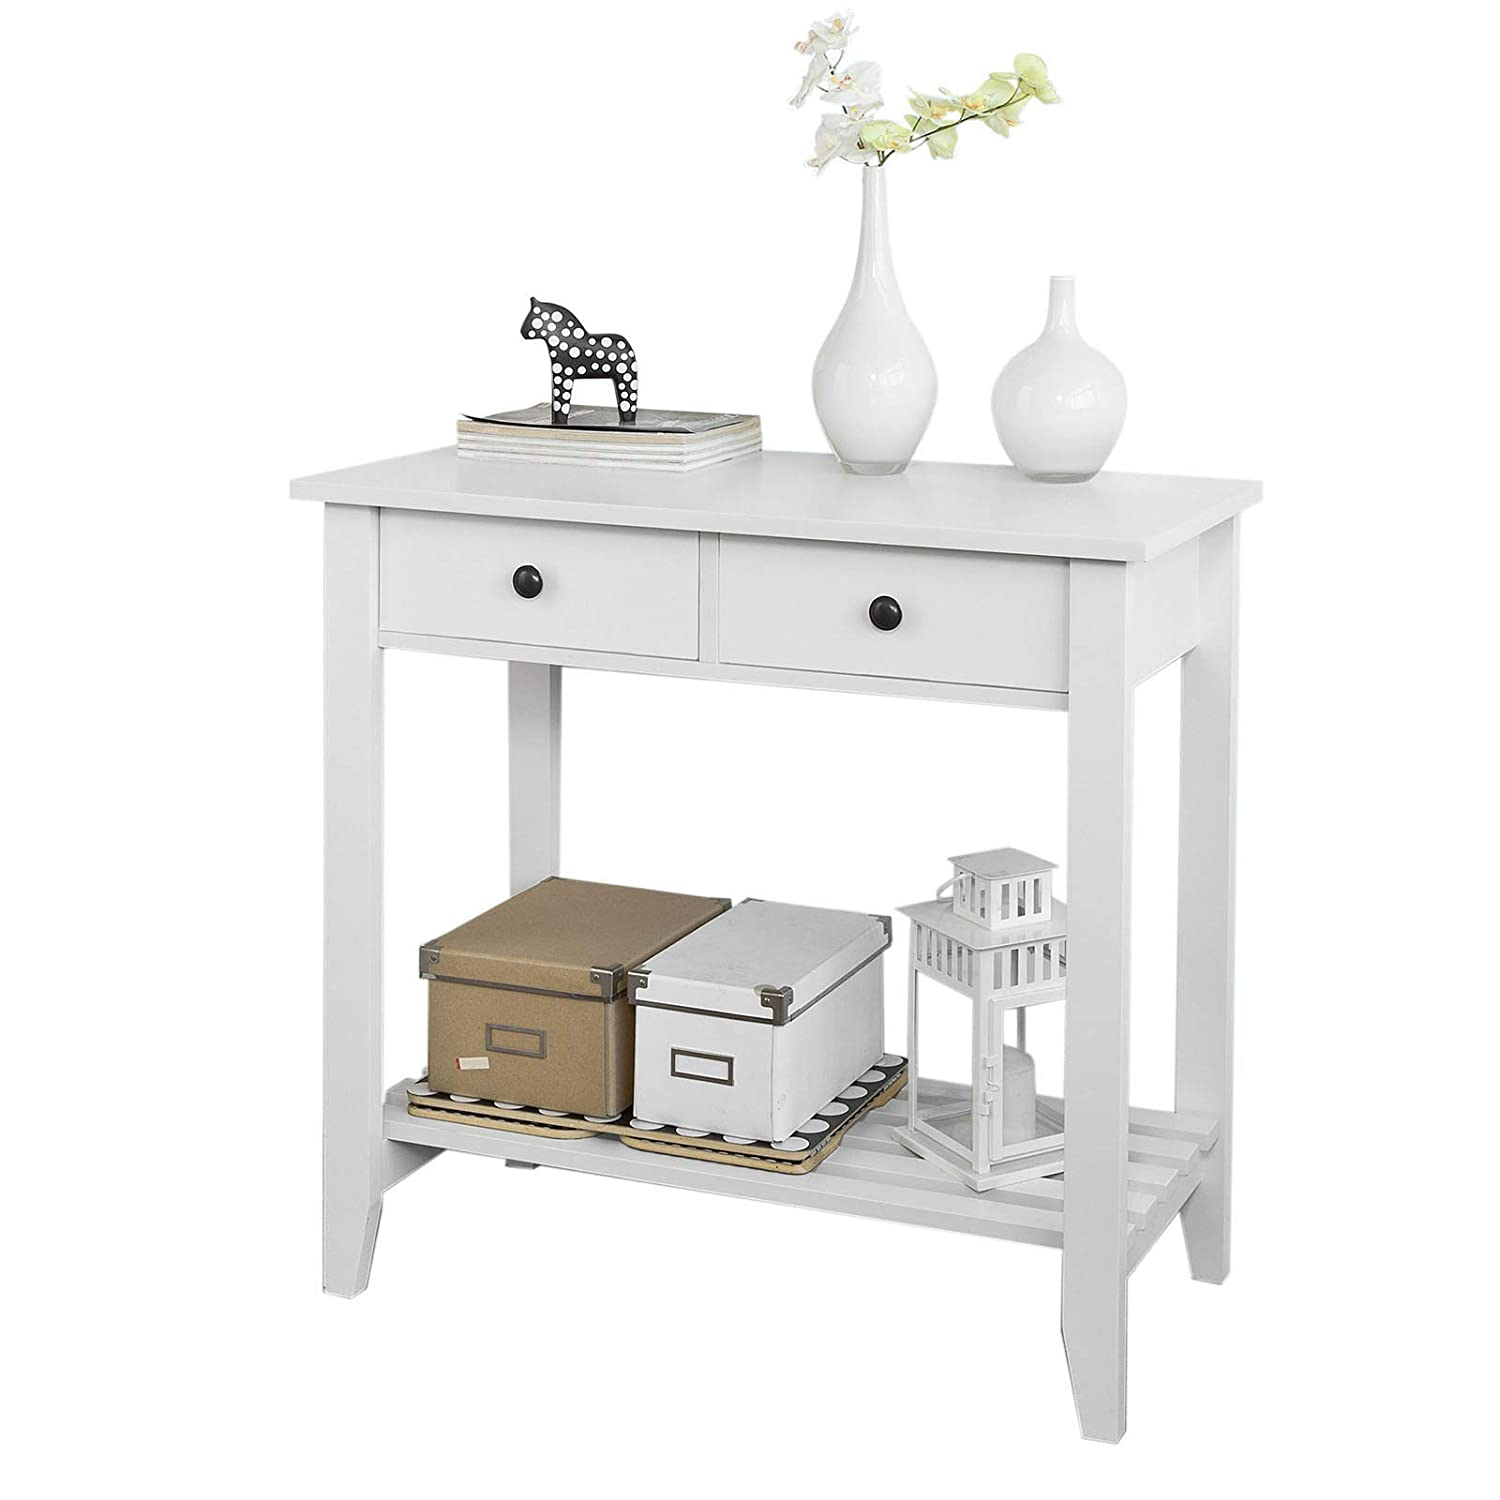 SoBuy® FSB04-W, Console Table with 2 Drawers and 1 Shelf, W85 x D40 x H80cm